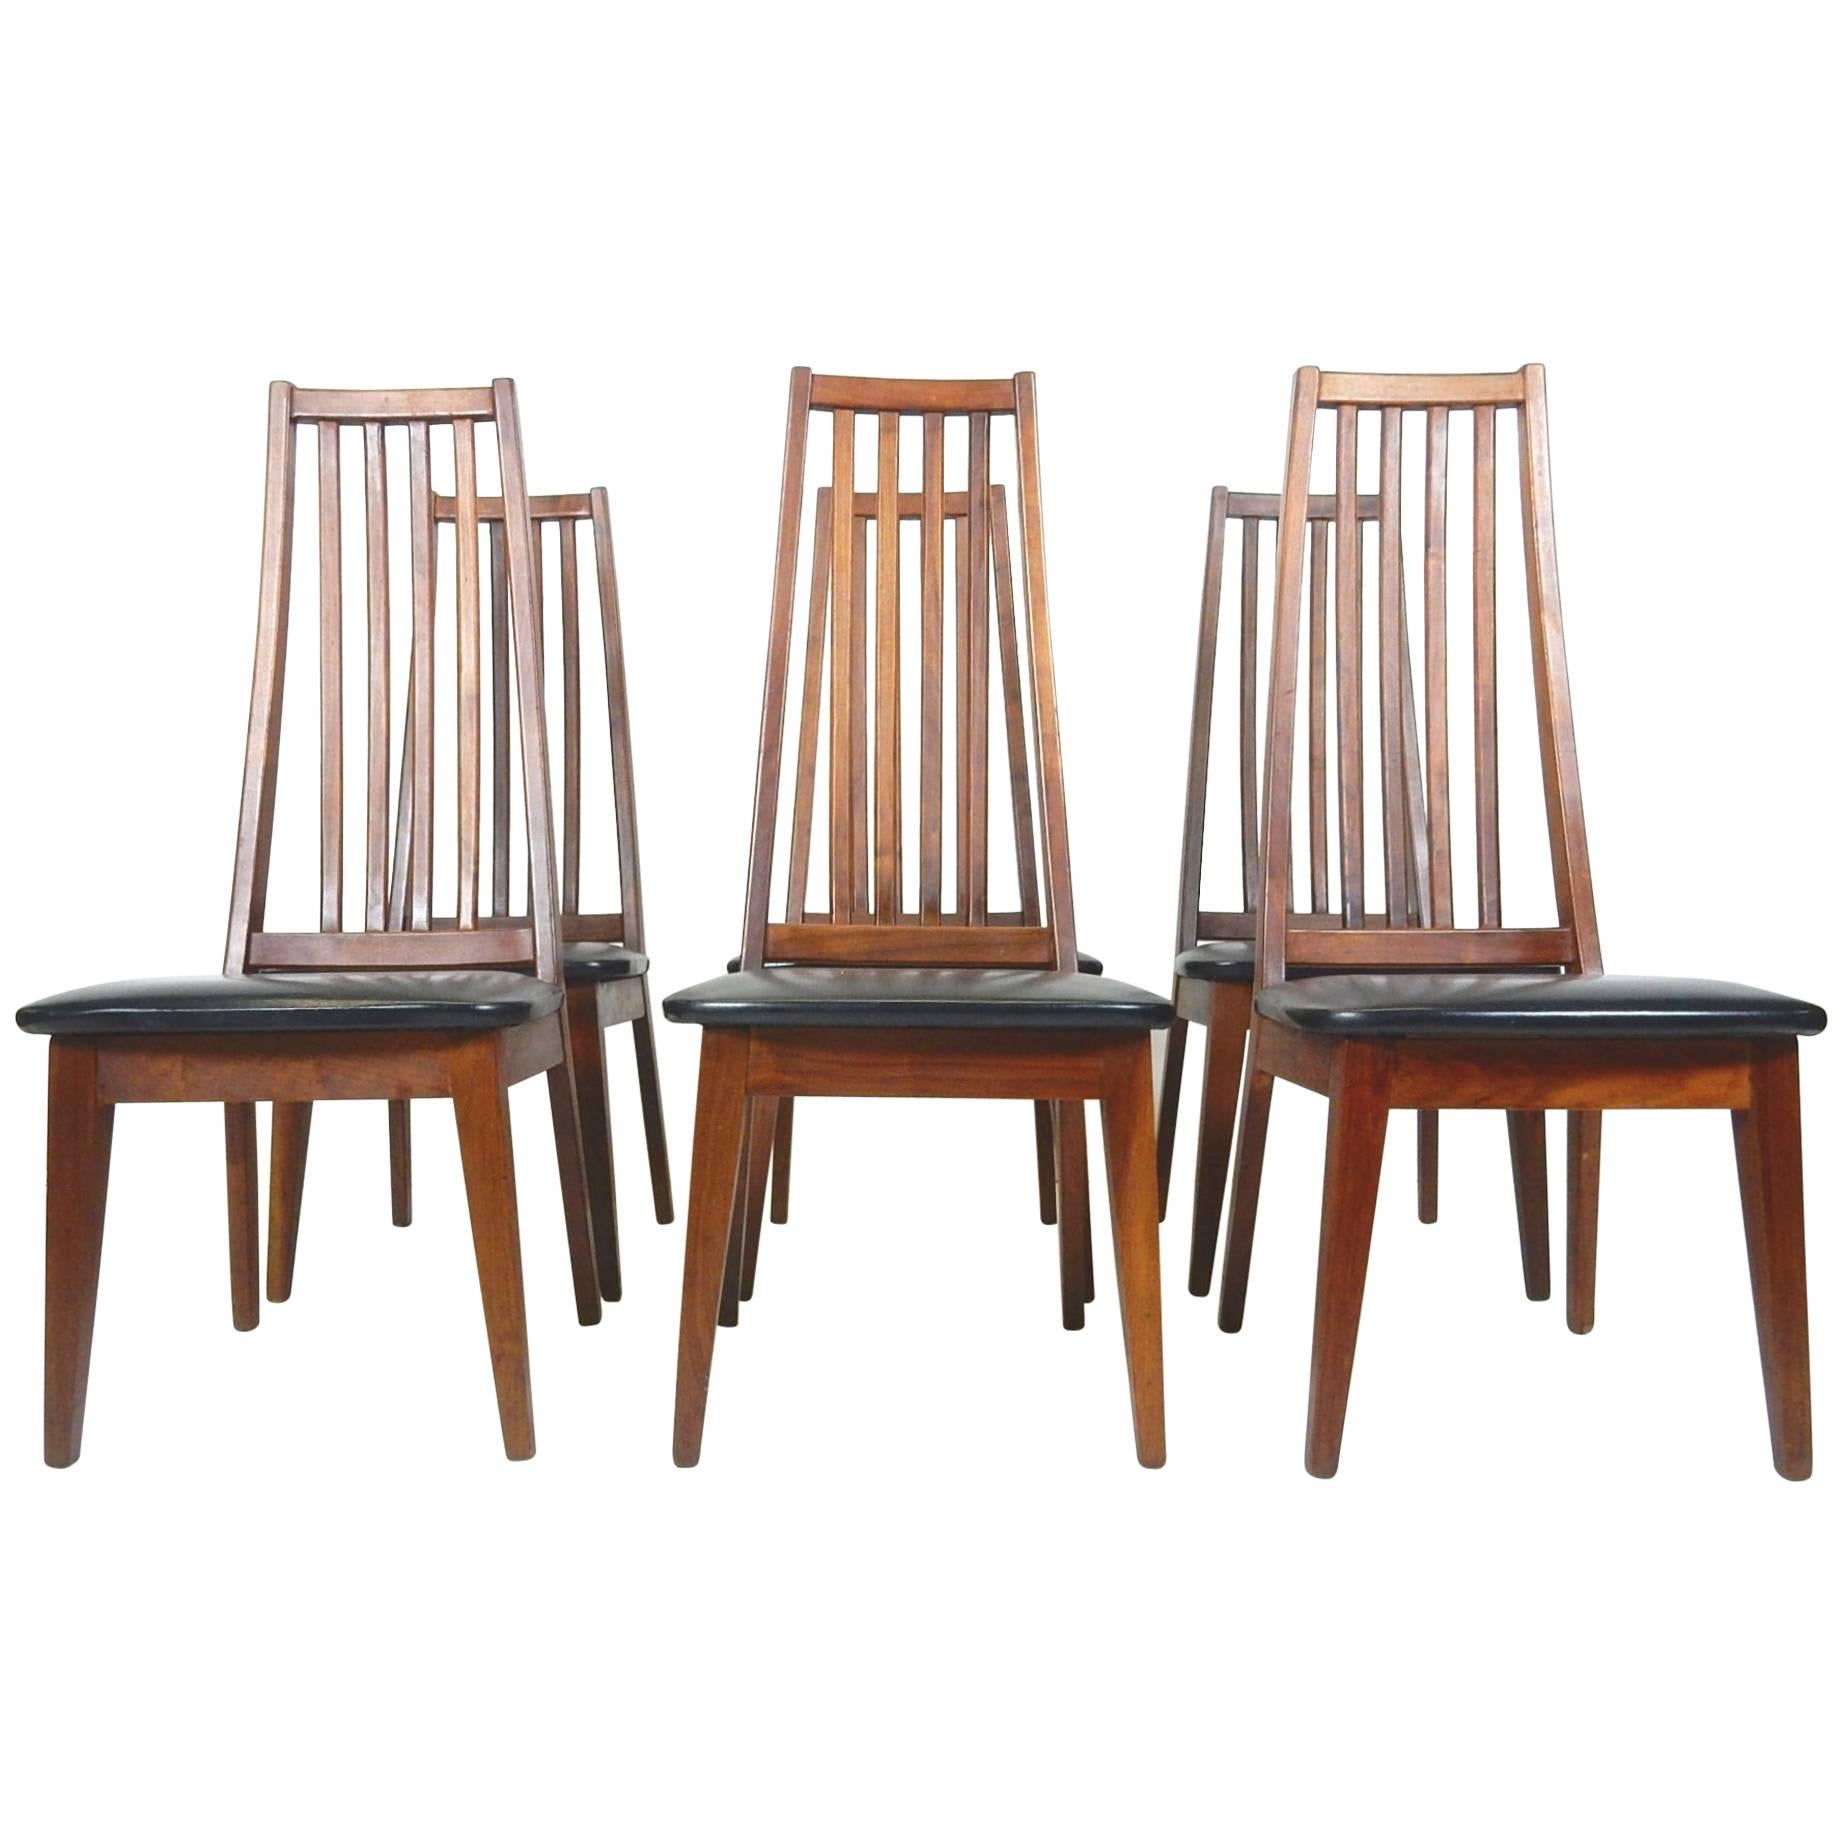 tall back dining chairs blue velvet tufted chair modern bentwood for sale at 1stdibs midcentury danish teak wood spindle